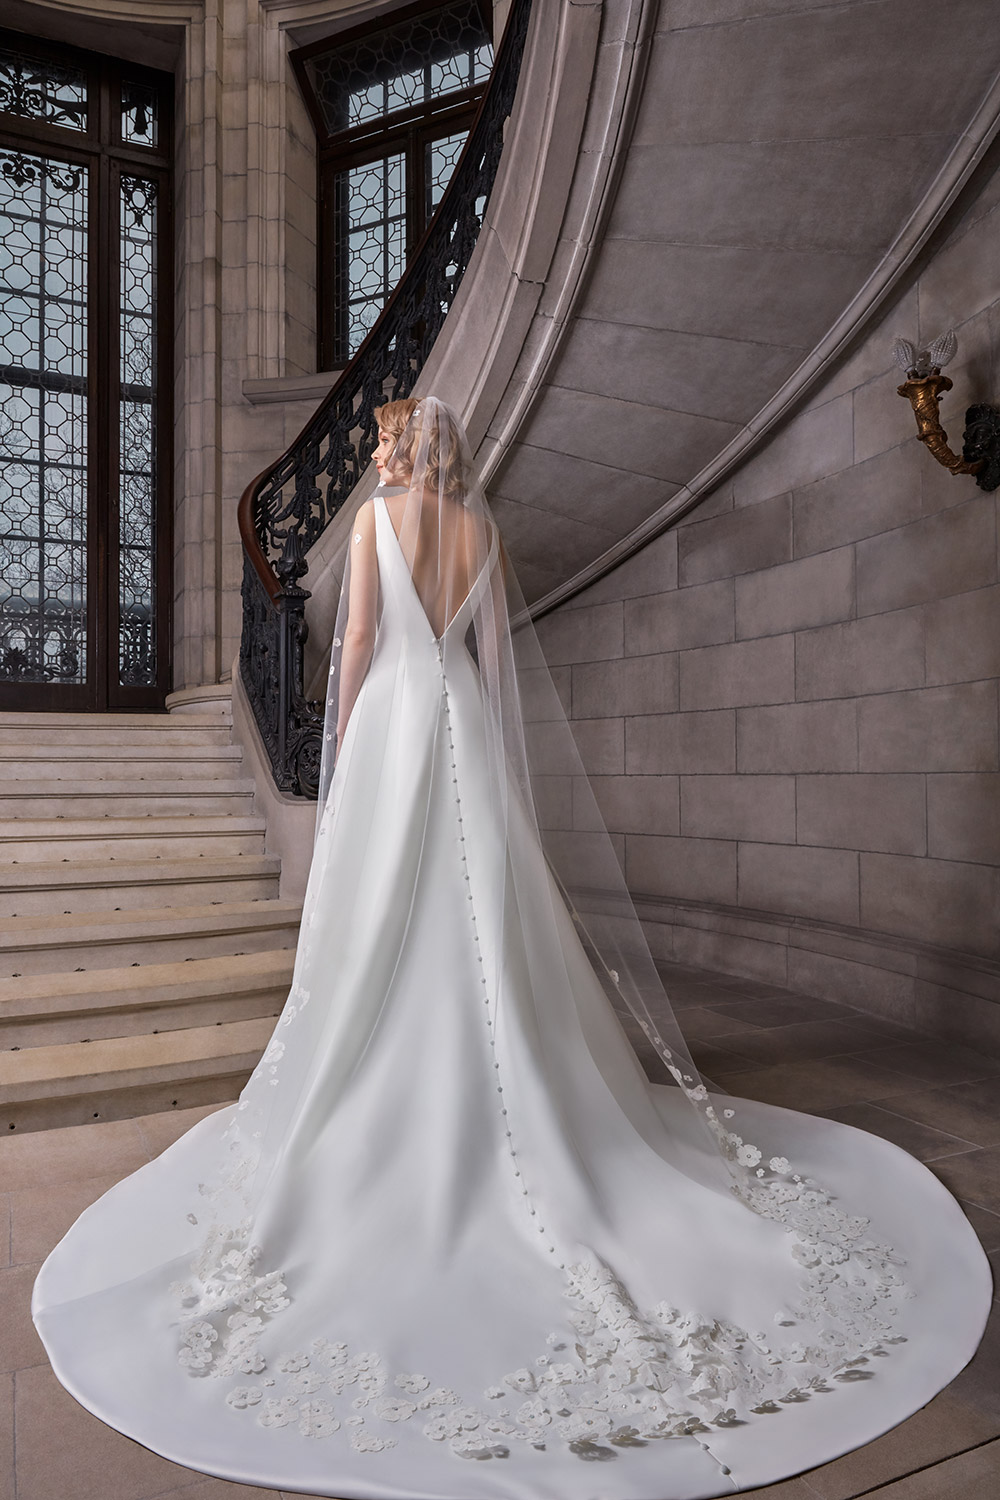 Caroline - Sareh Nouri Spring 2020 Collection. www.theweddingnotebook.com